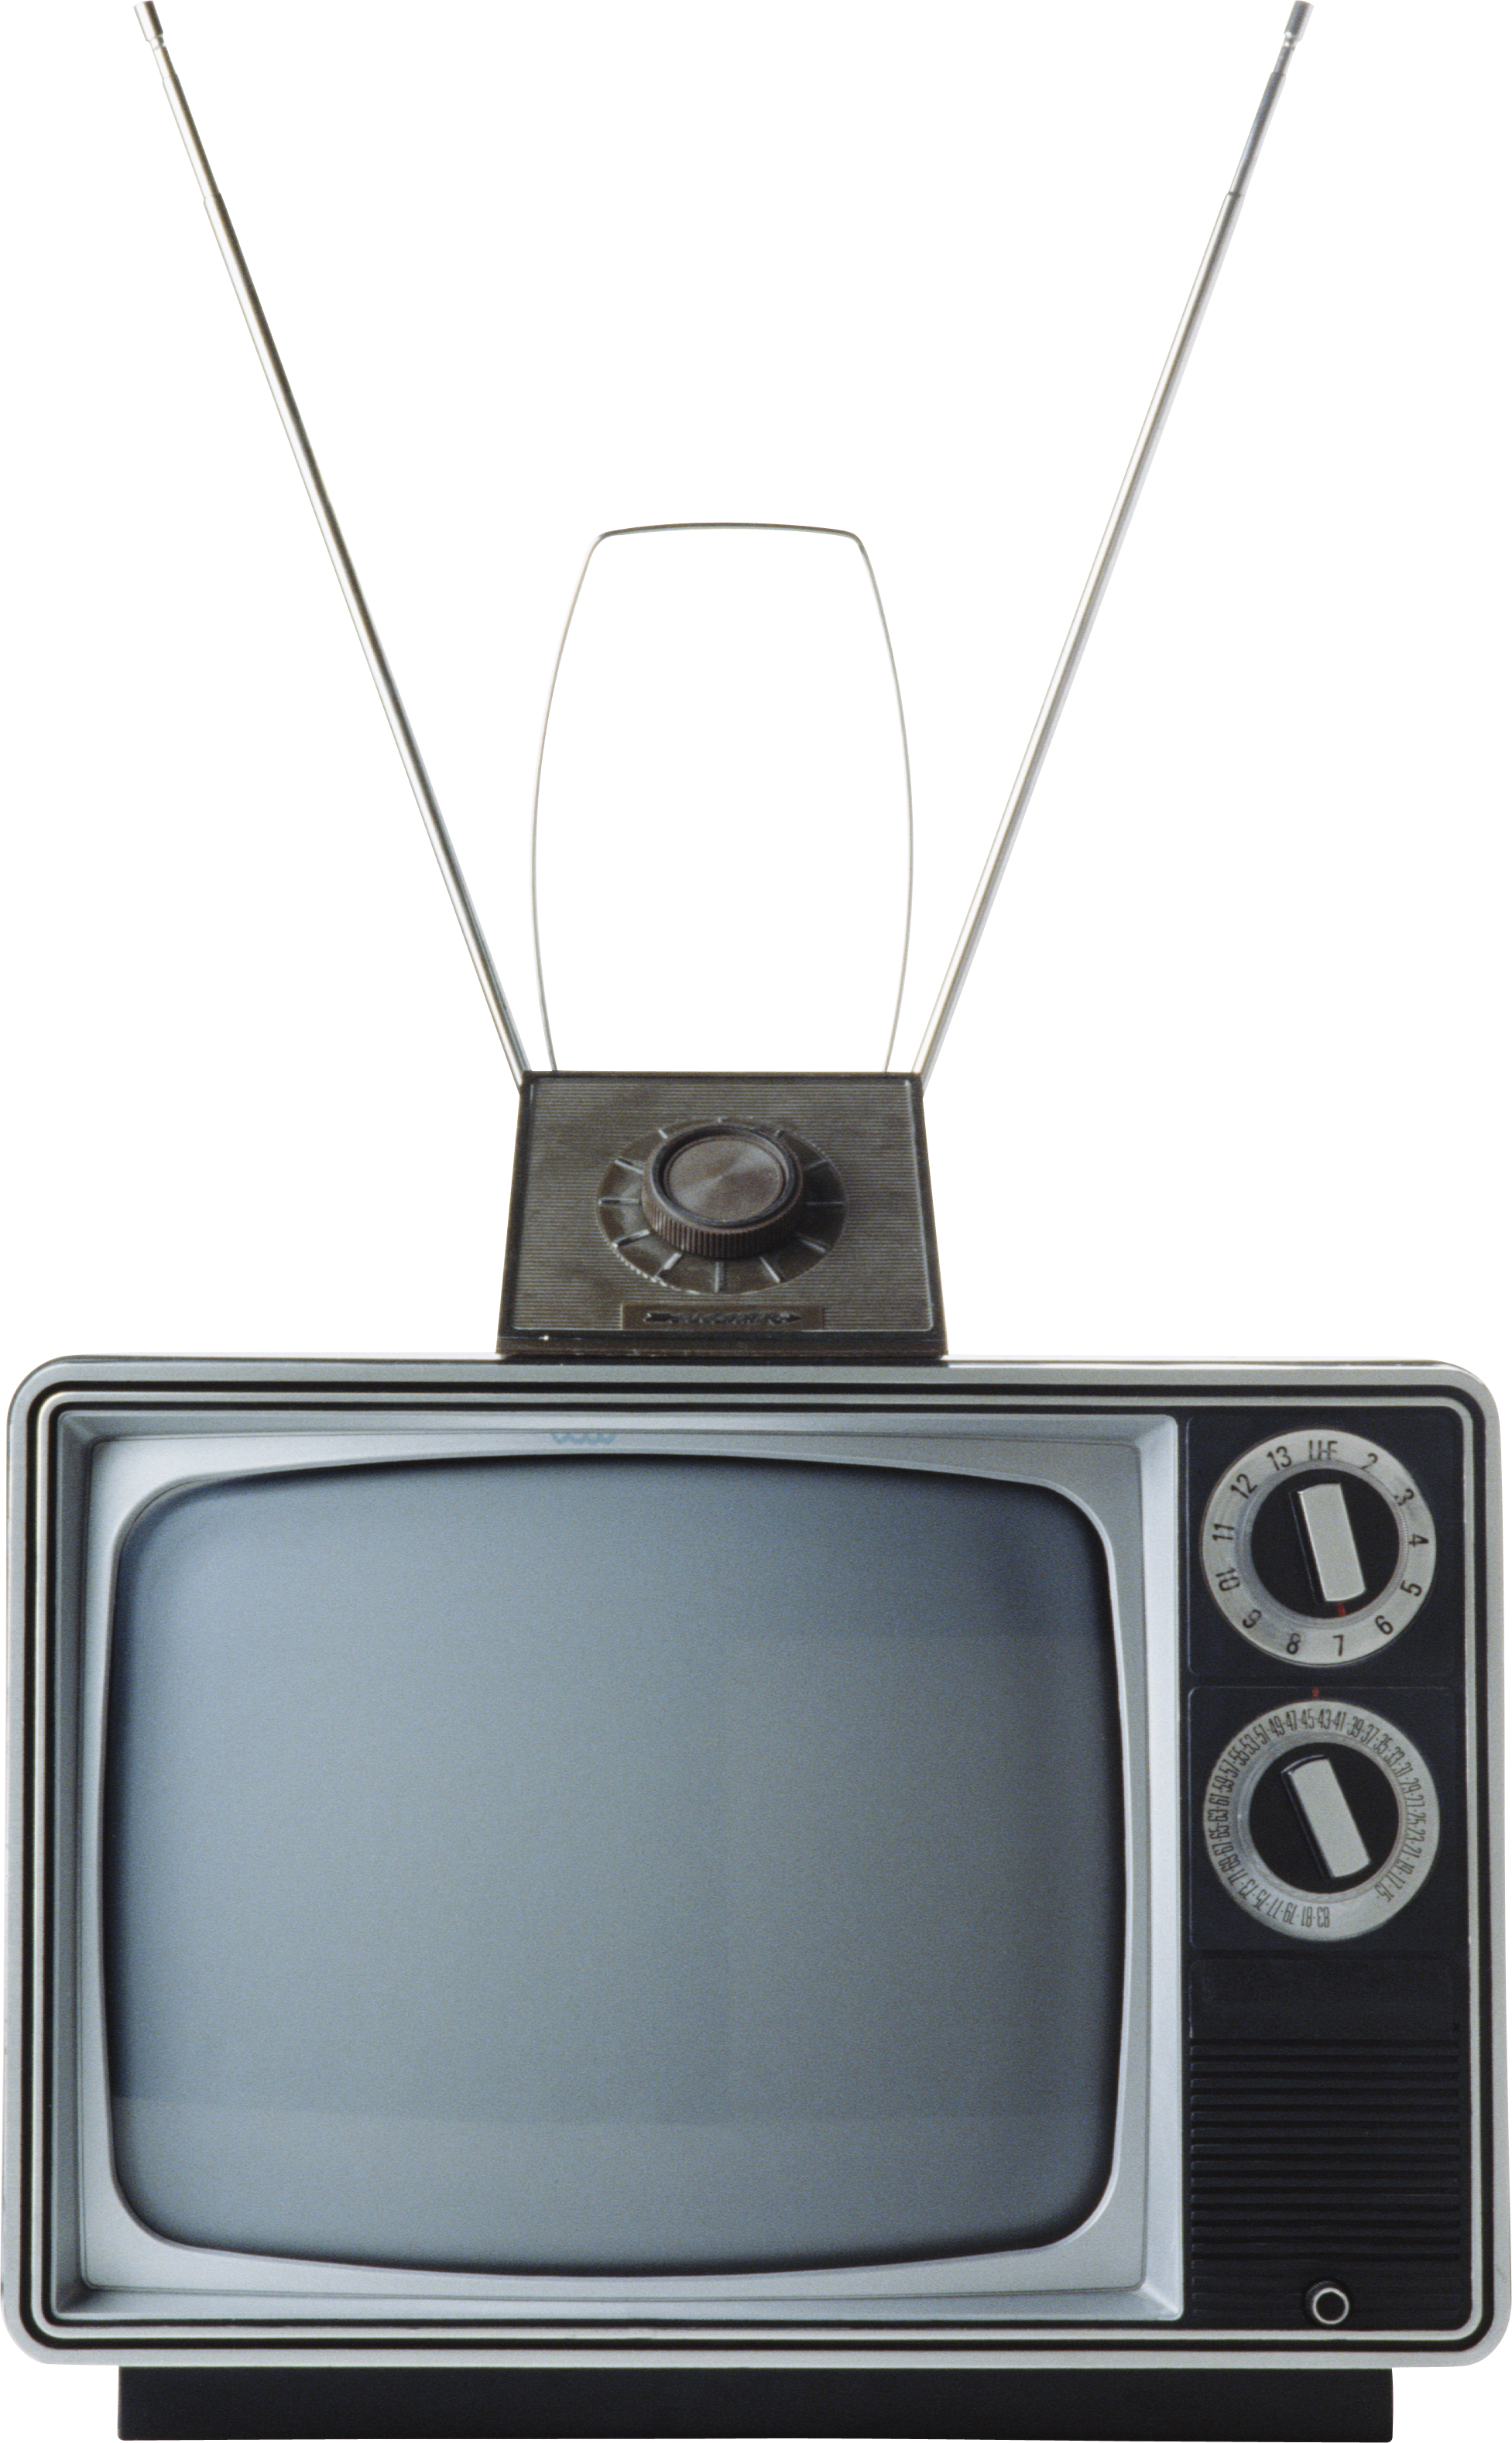 Old Television Png Image Television Old Tv Box Tv